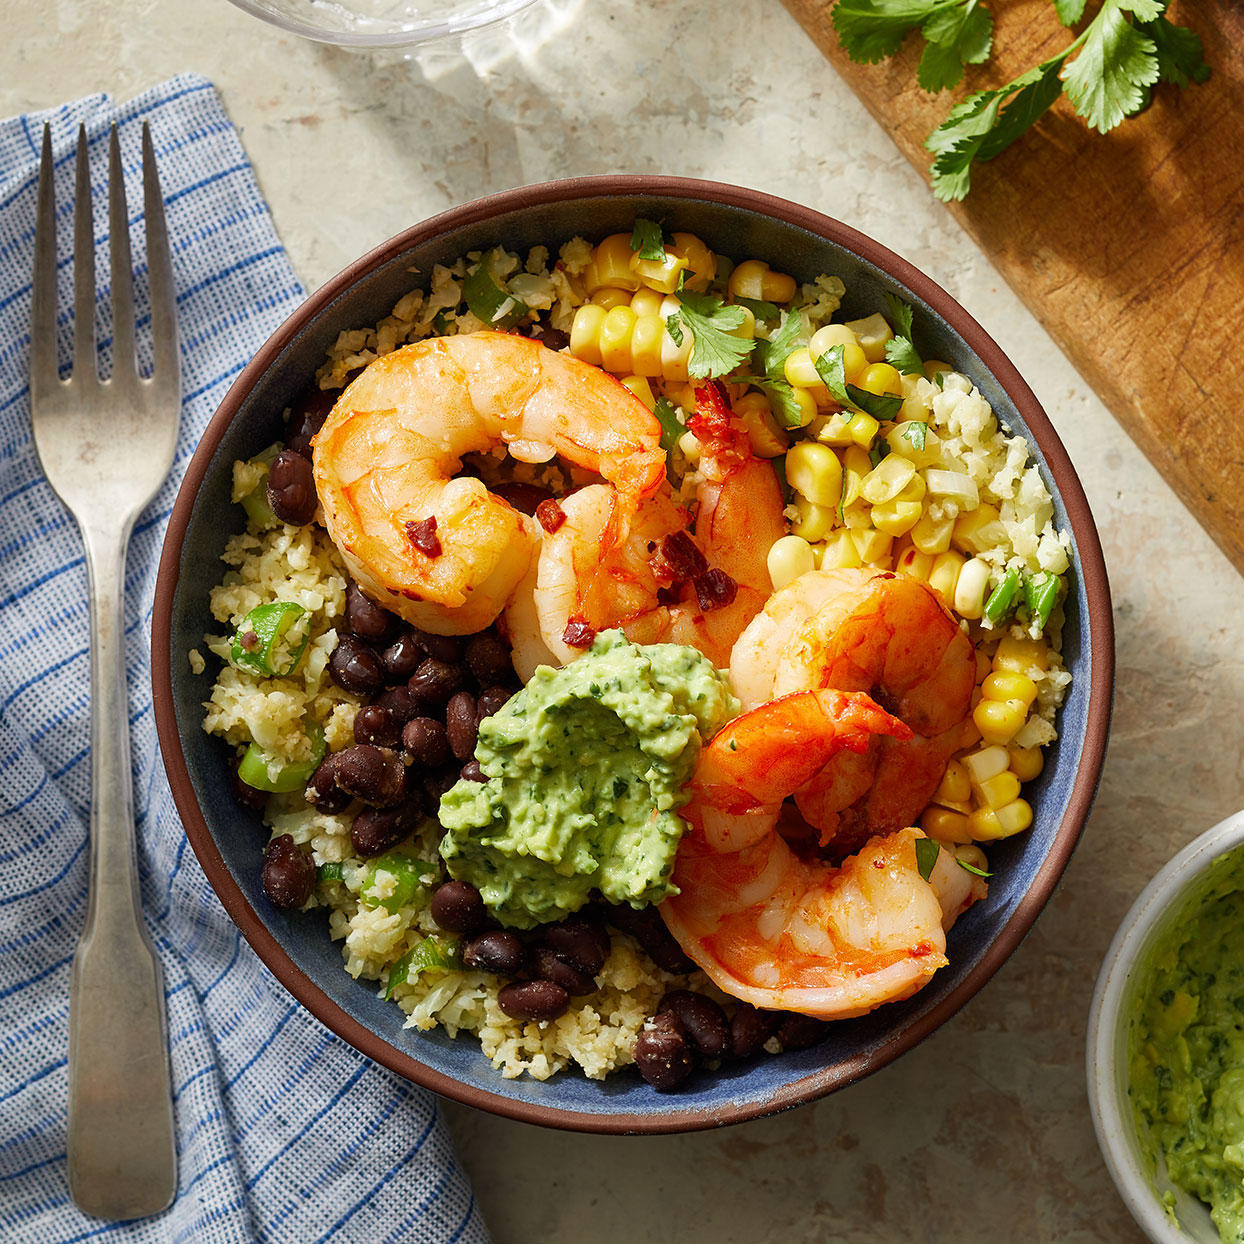 Southwestern Cauliflower Rice Bowls with Shrimp & Avocado Crema Trusted Brands